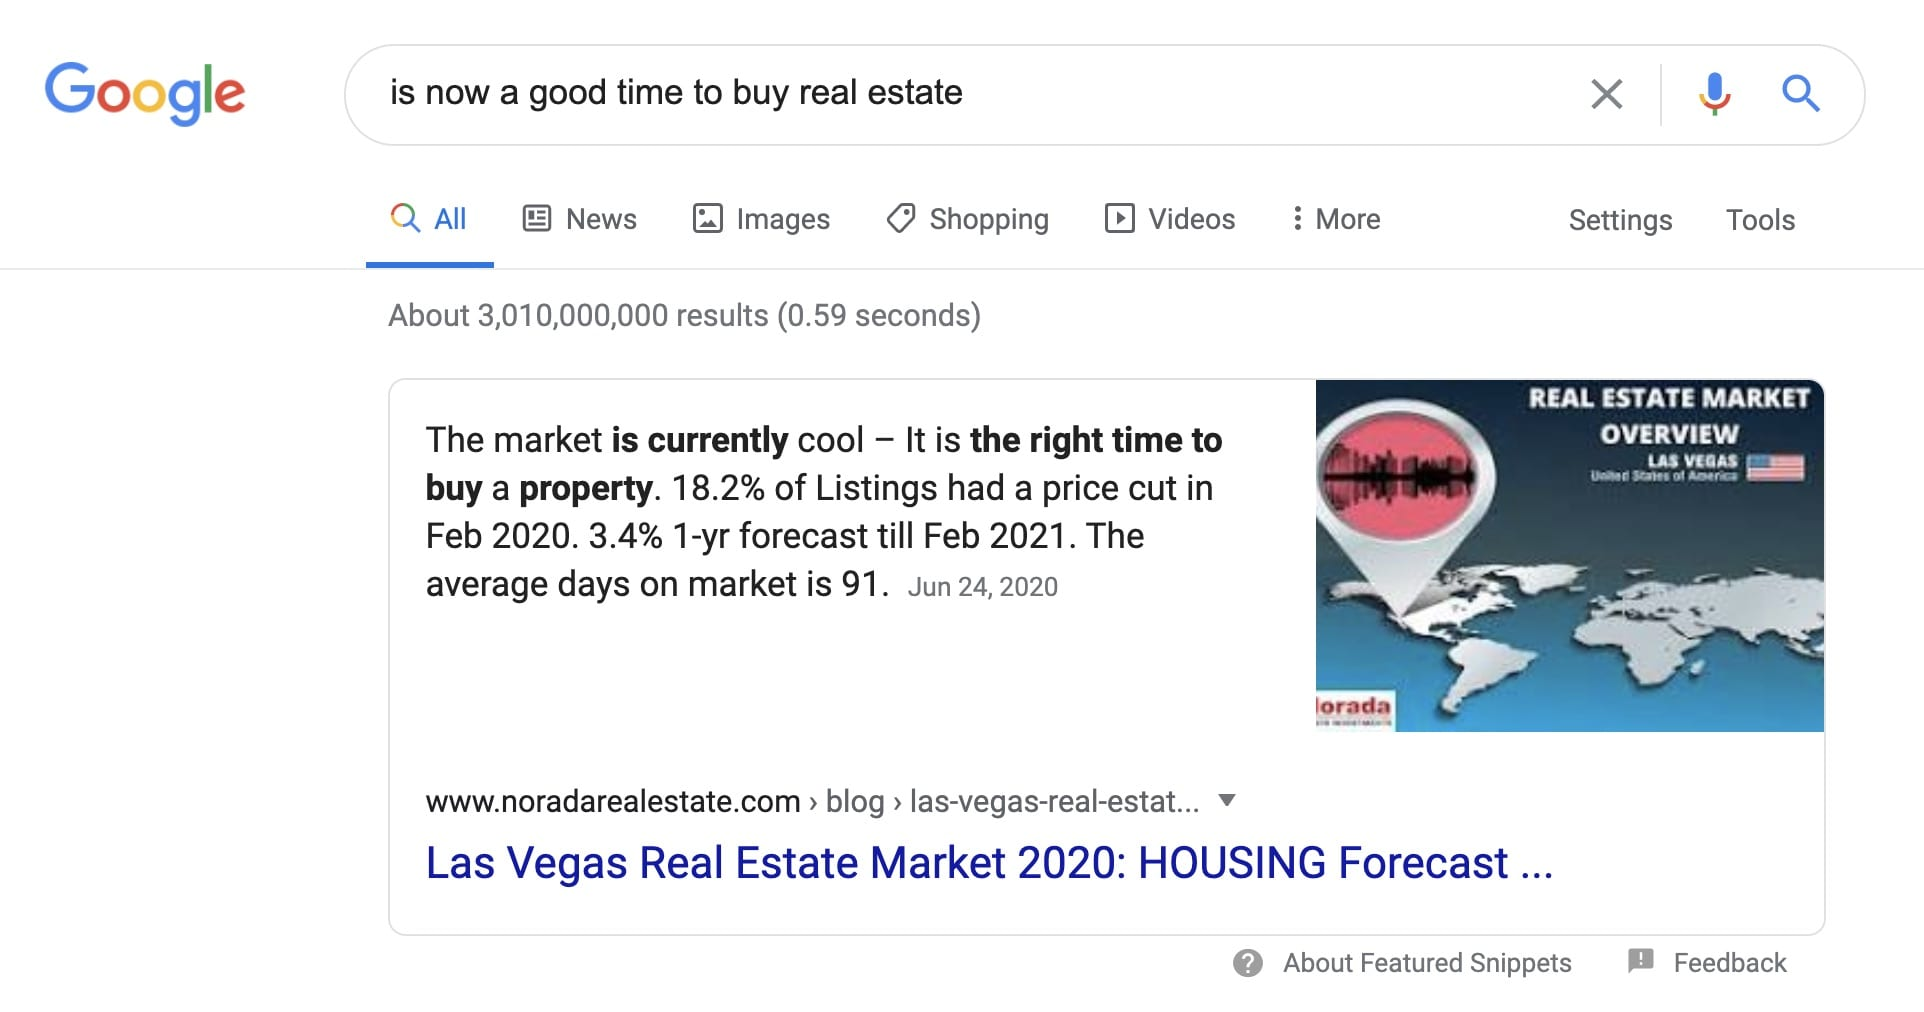 Is Now a good time to buy real estate is a search term used on google that has earned Noradarealestate.com a featured snippet